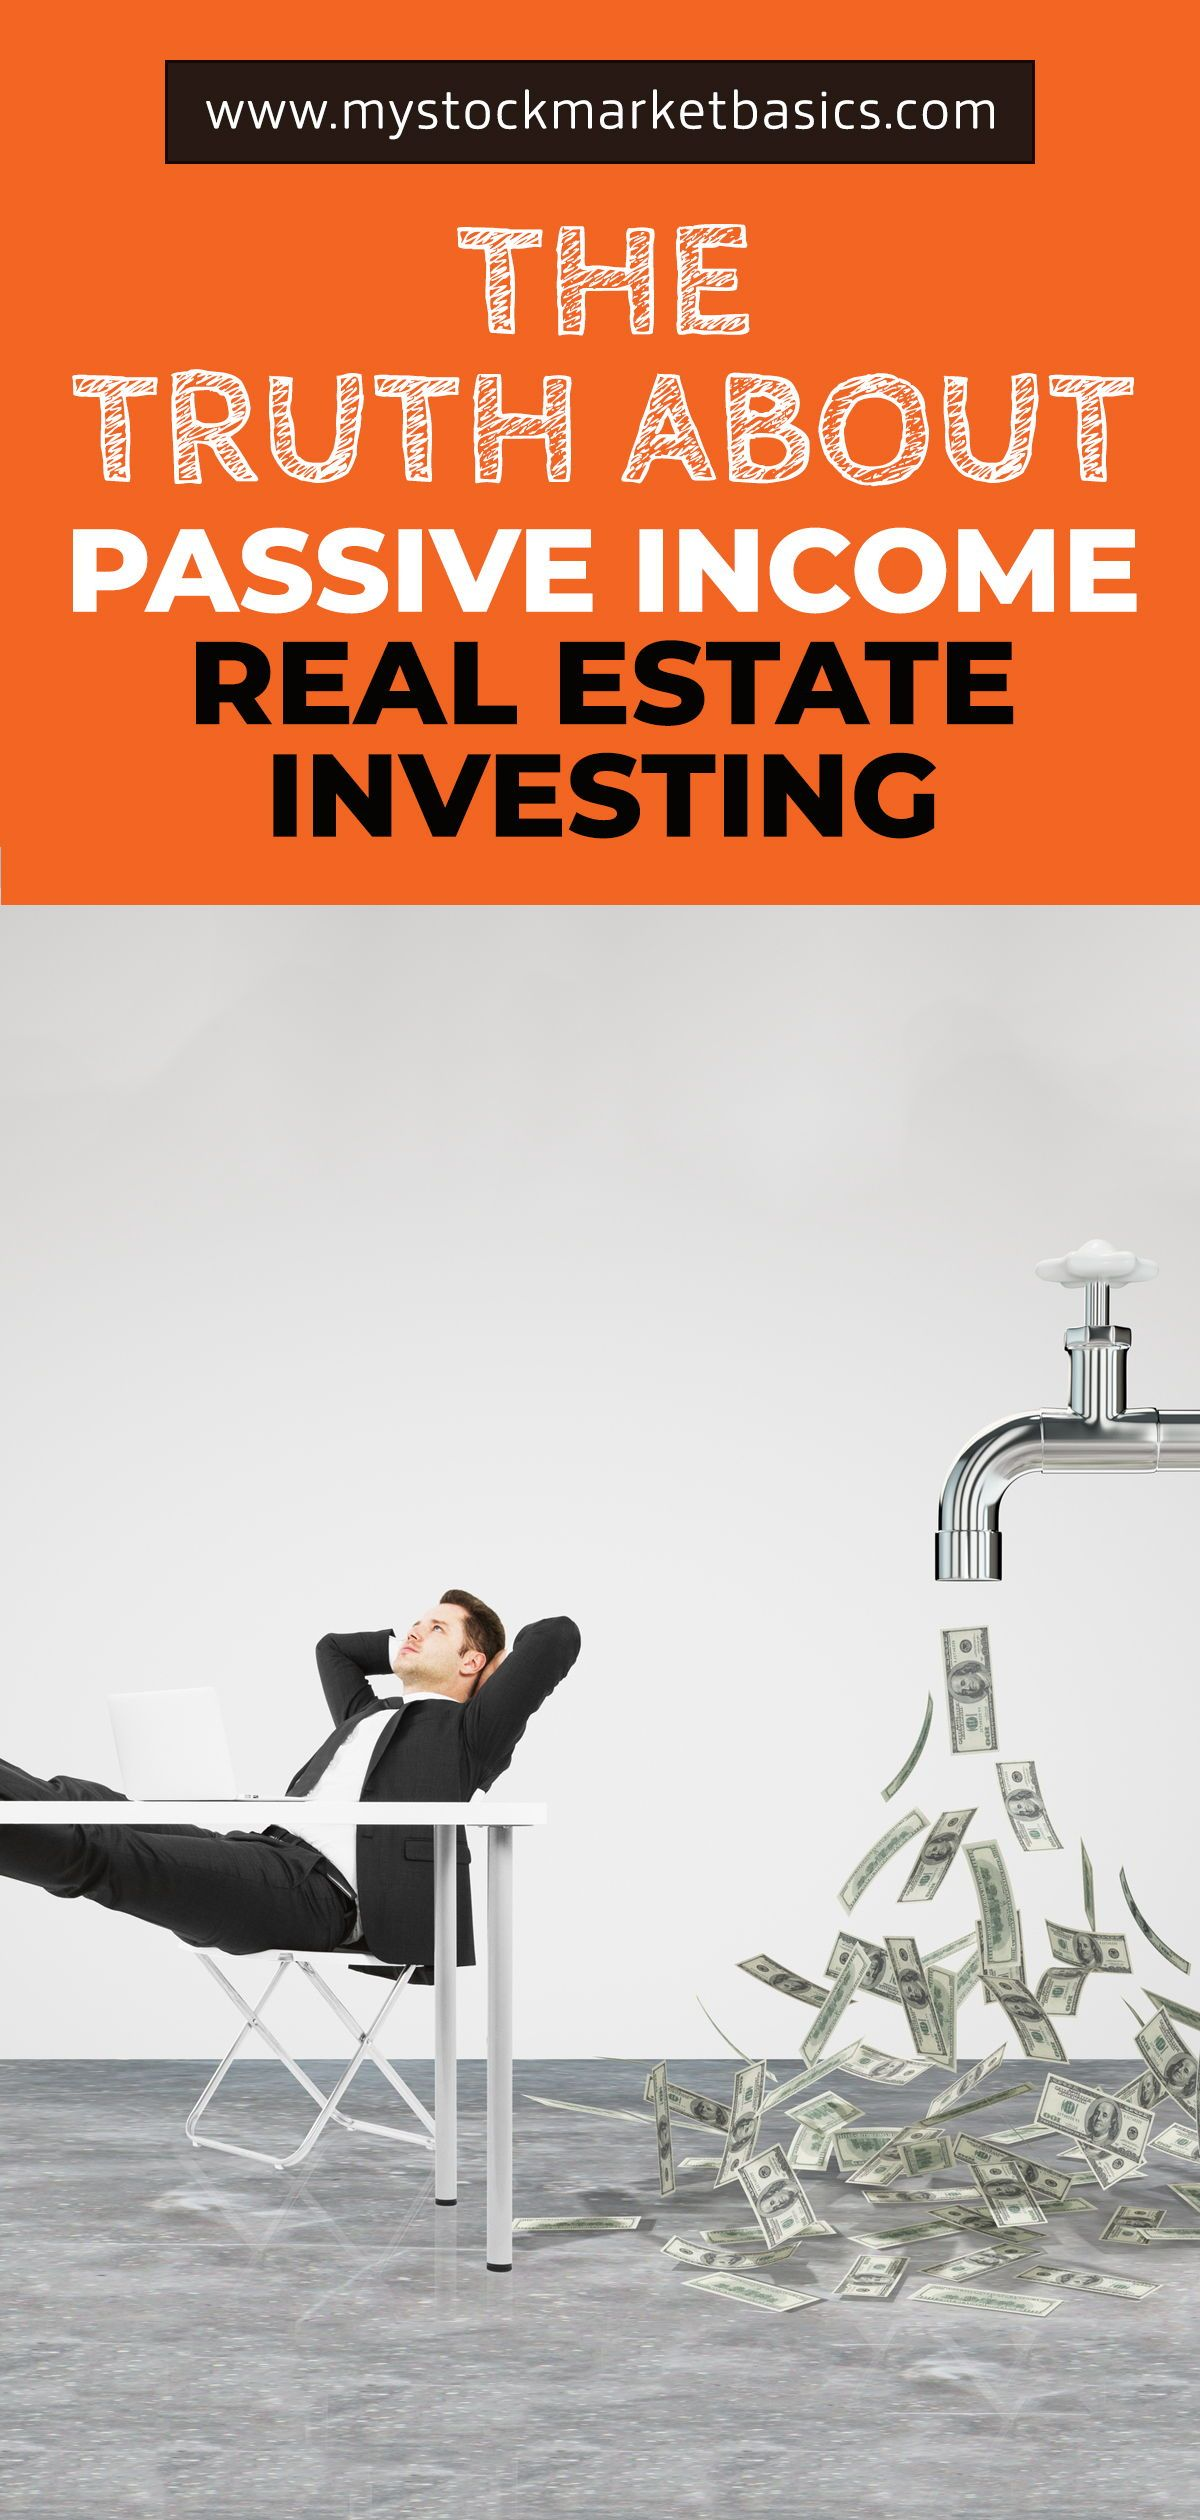 The Truth About Passive Income Real Estate Investing Real Estate Investing Passive Income Real Estate Investing